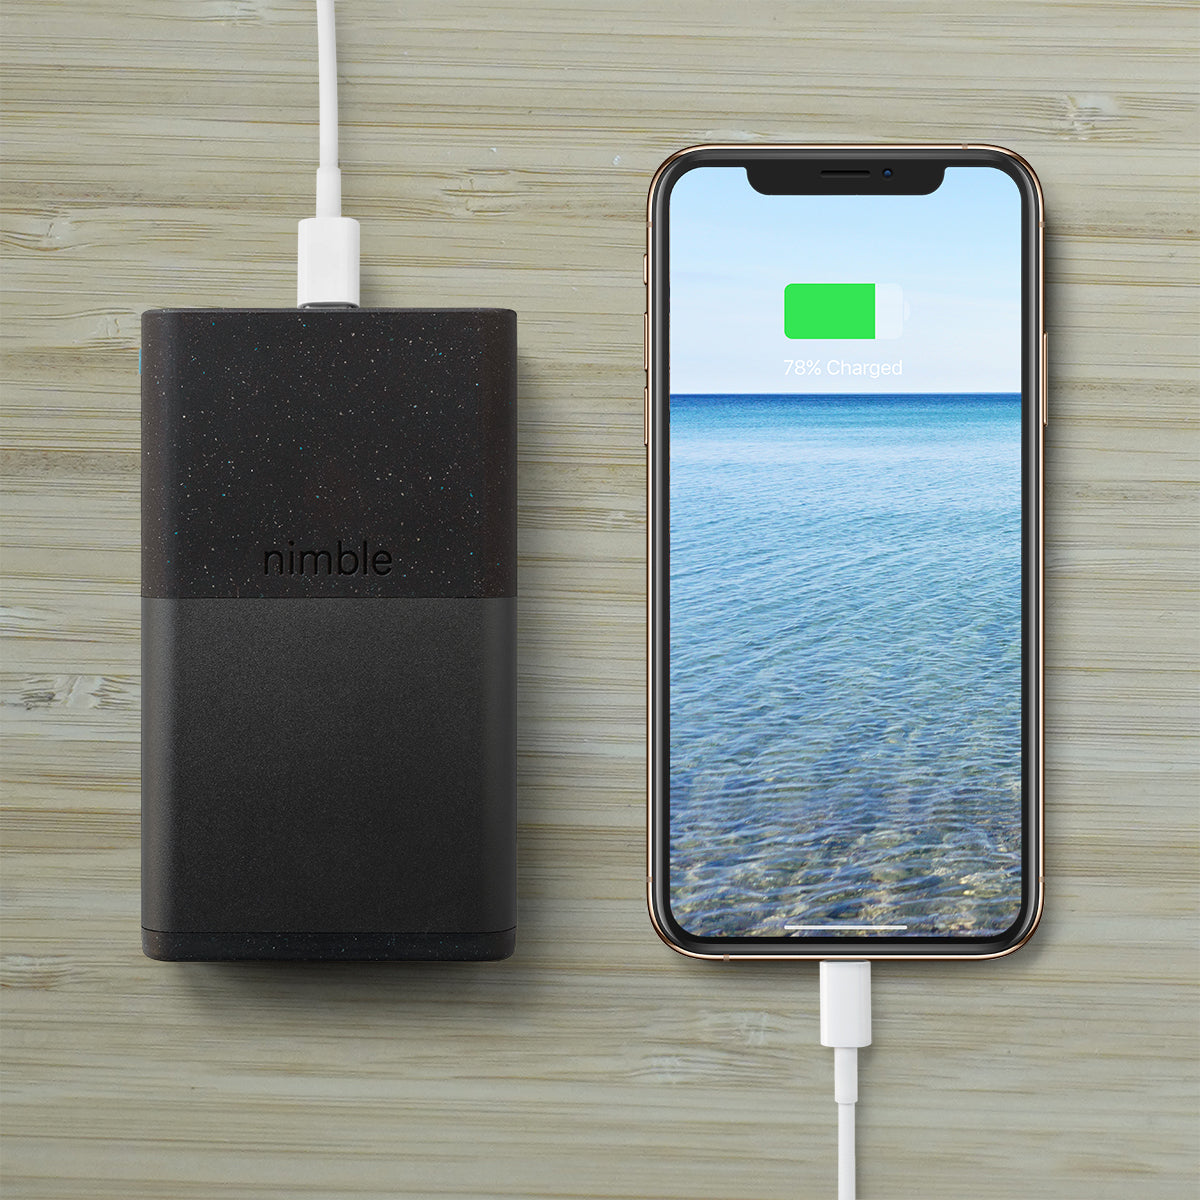 USB-C to Lightning